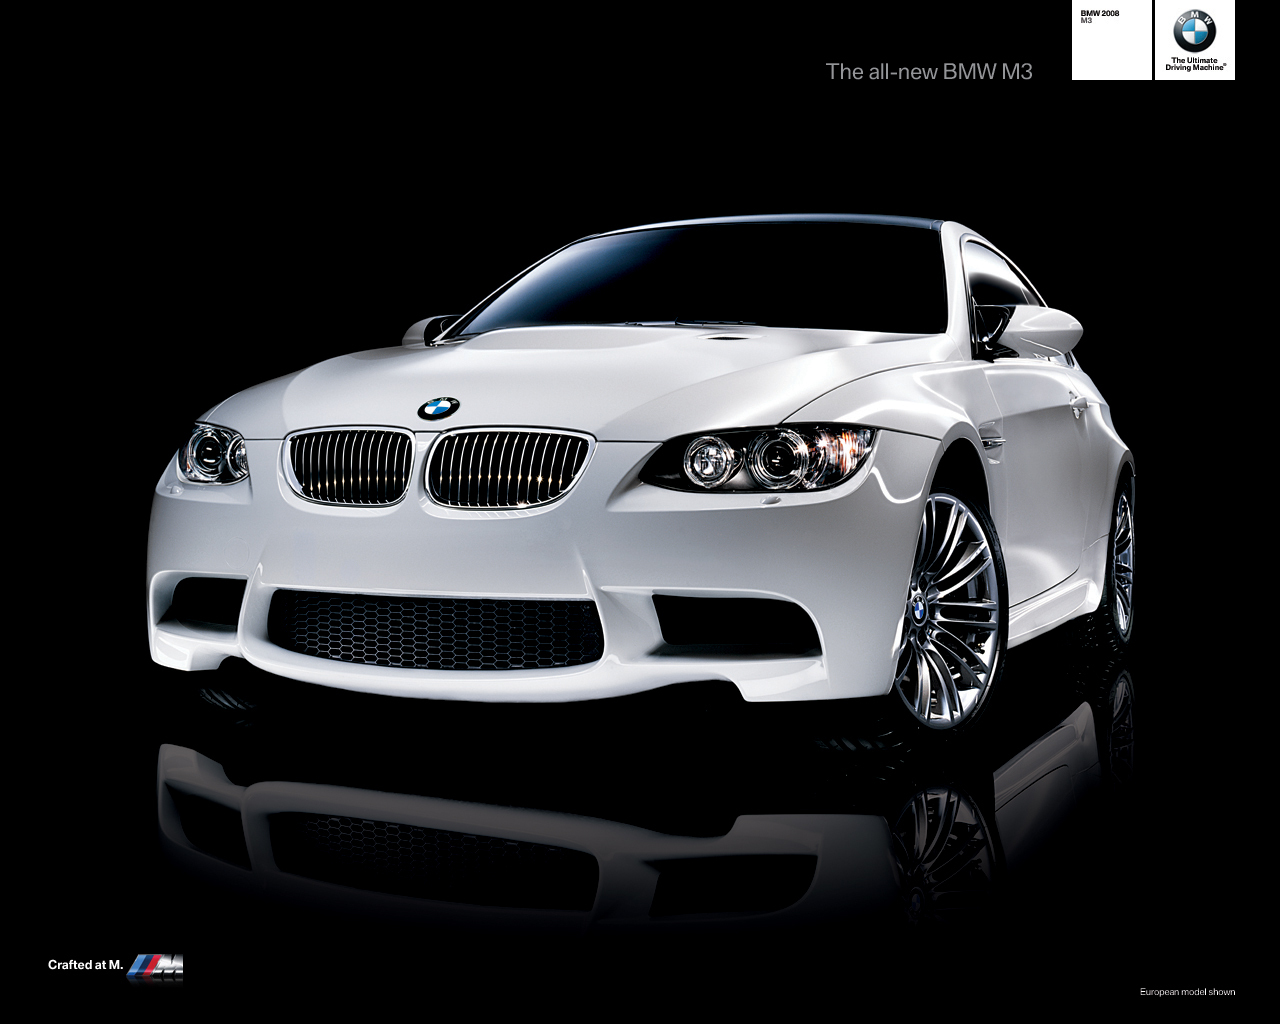 Car, About Car, Which Car, Sport Car, New Cars, Wallpapers, Photos, Images,  Snaps: Bmw Sports Cars